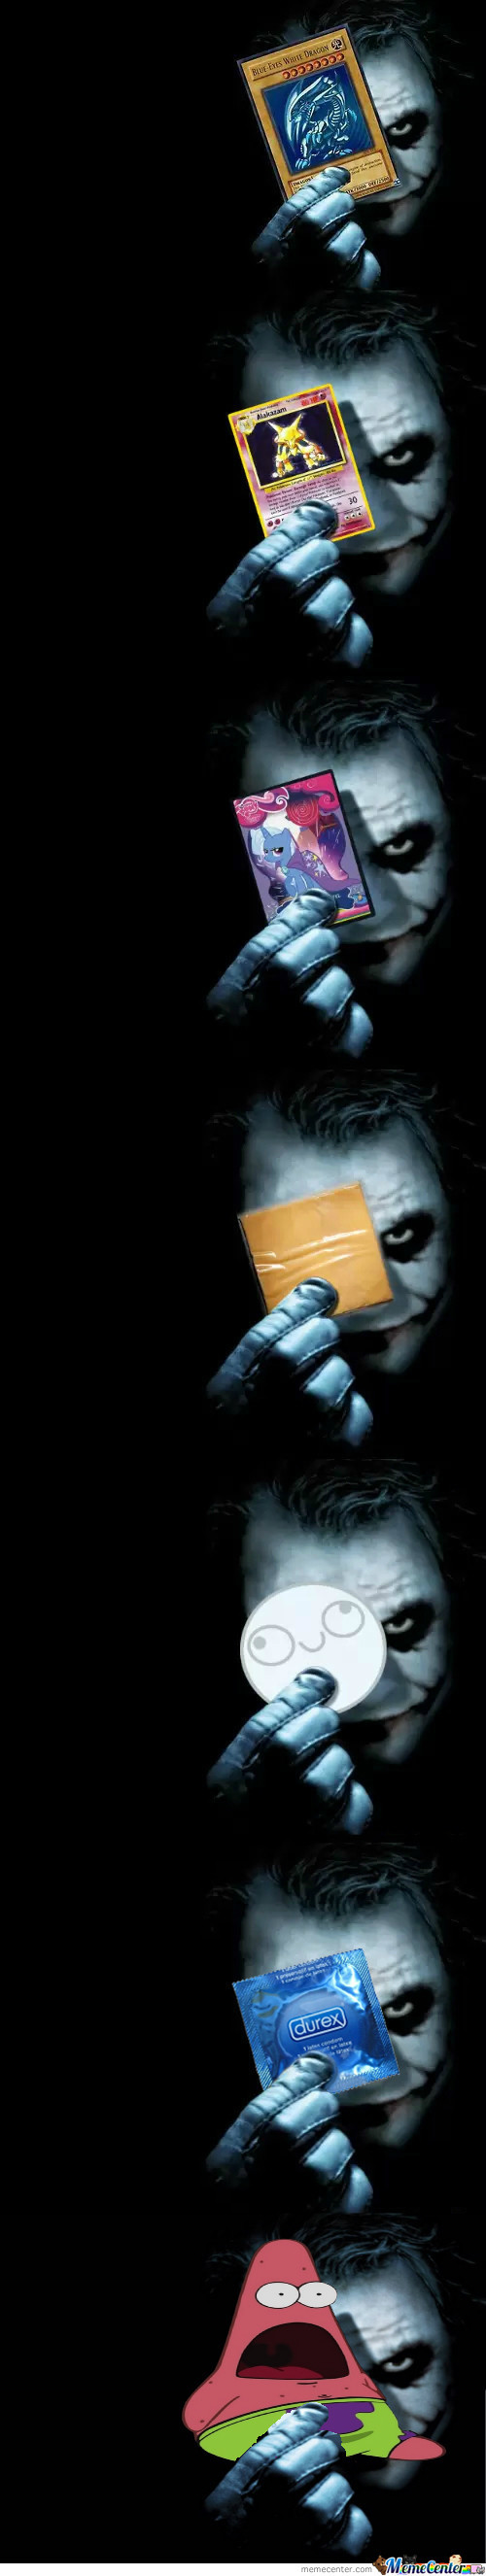 [RMX] [RMX] [RMX] The Joker's Trump Card